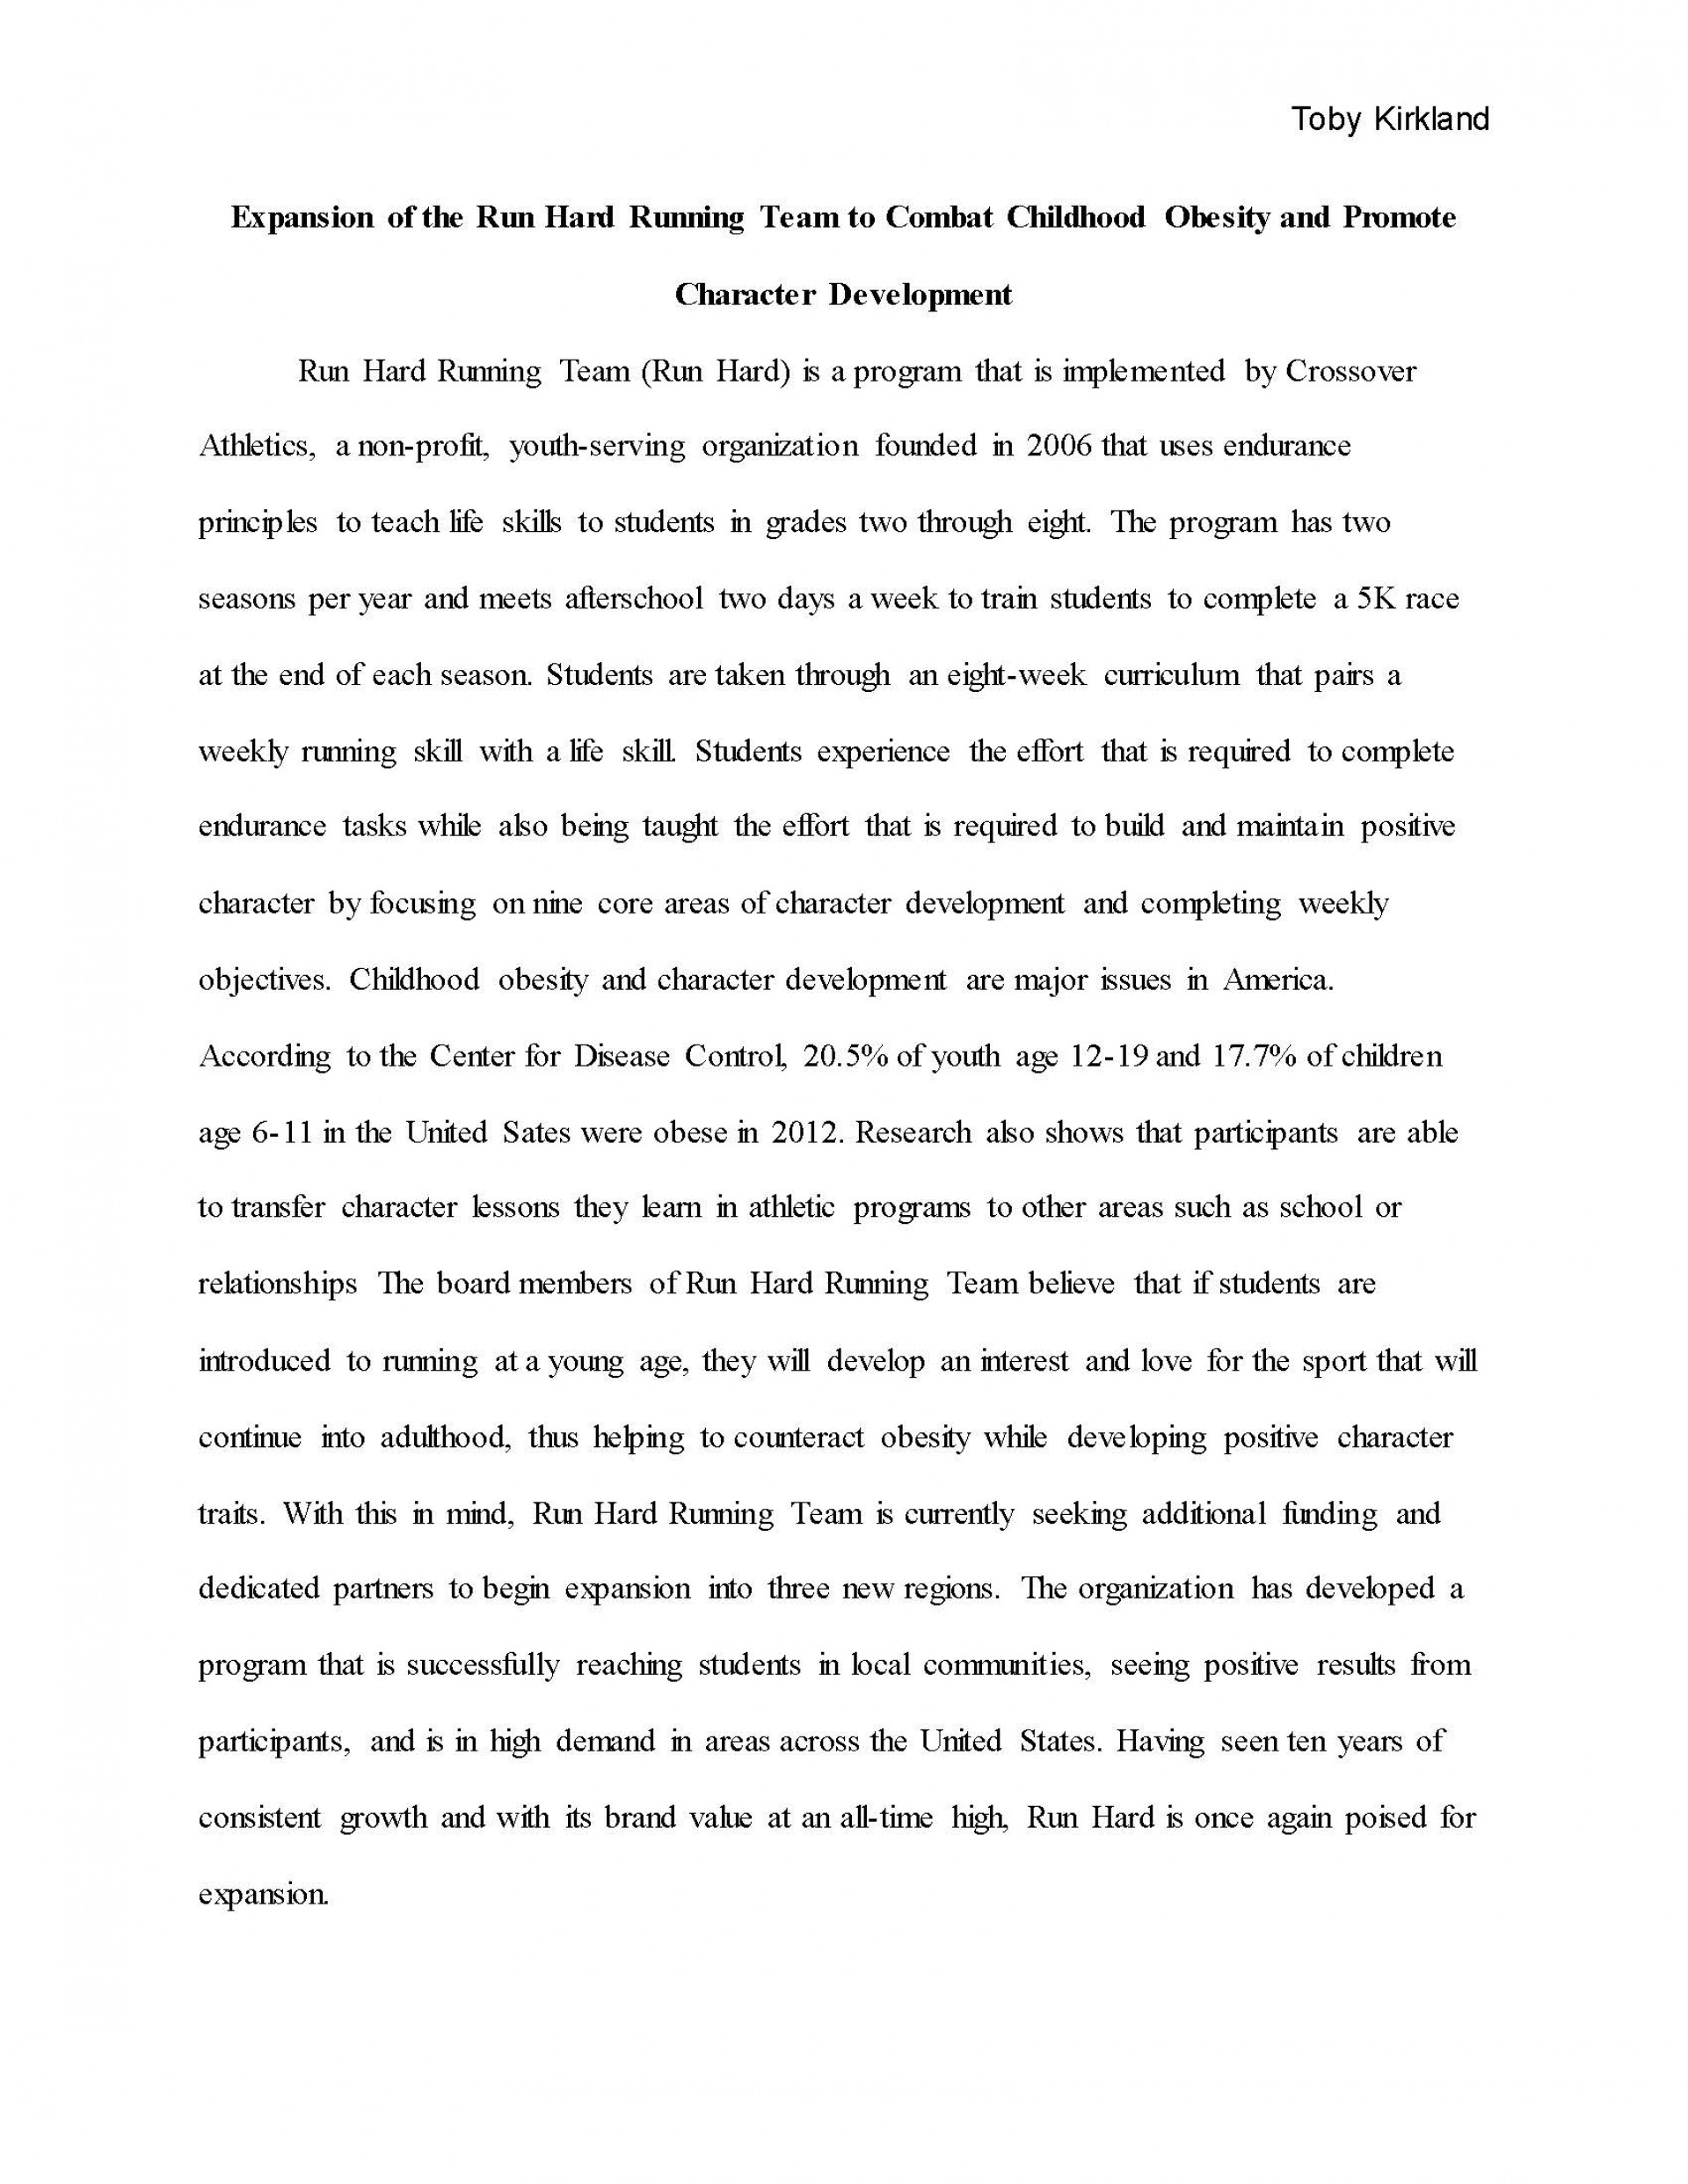 Proposal essay childhood obesity